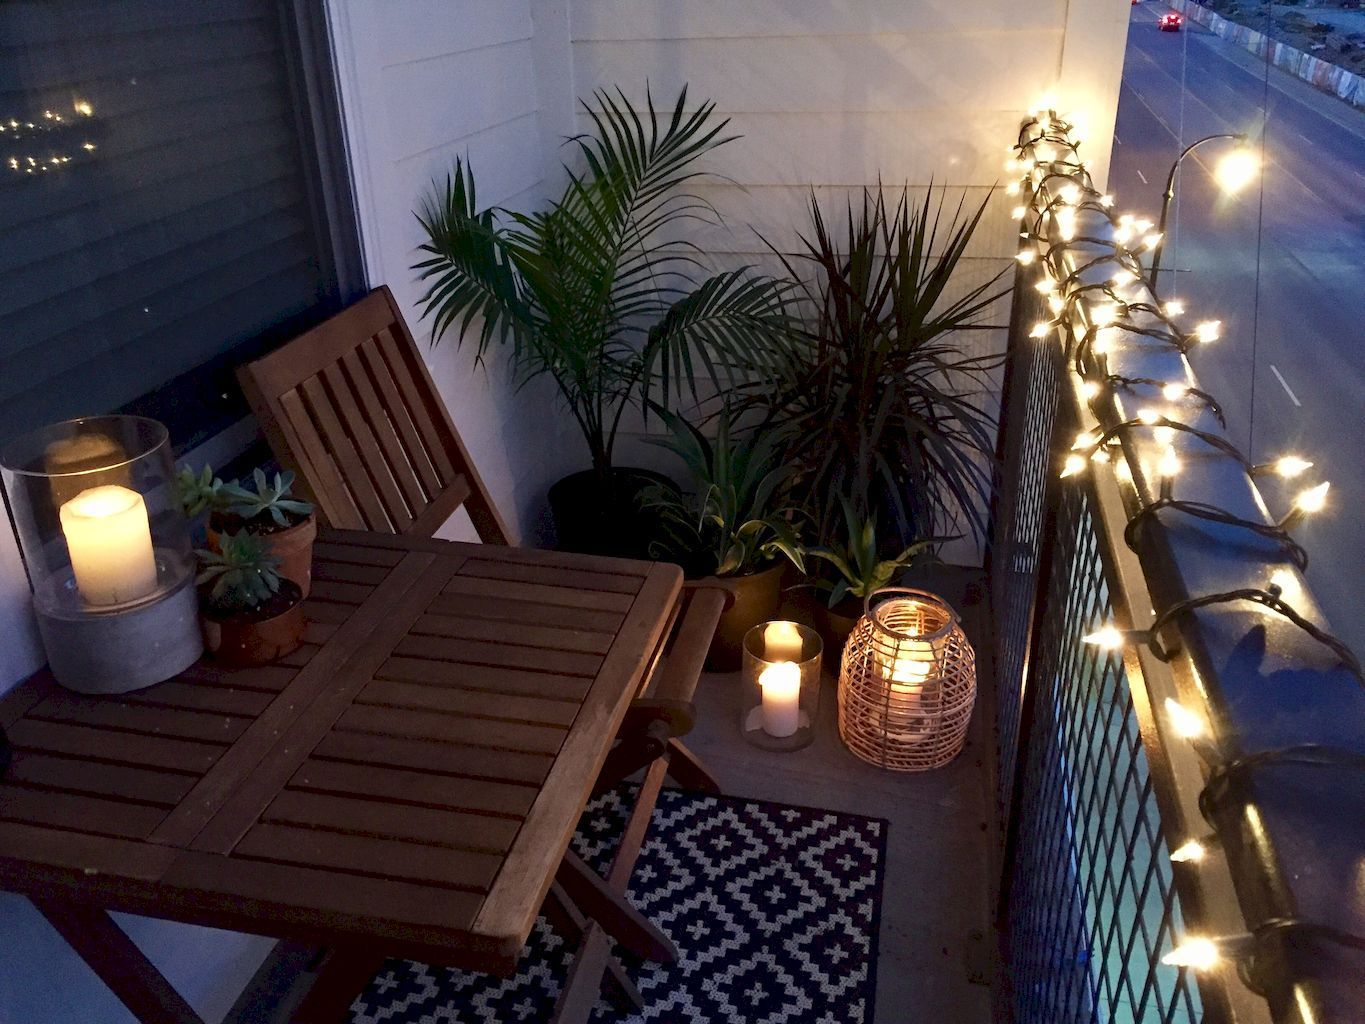 Beautiful and cozy apartment balcony decor ideas 77 for Apartment balcony ideas